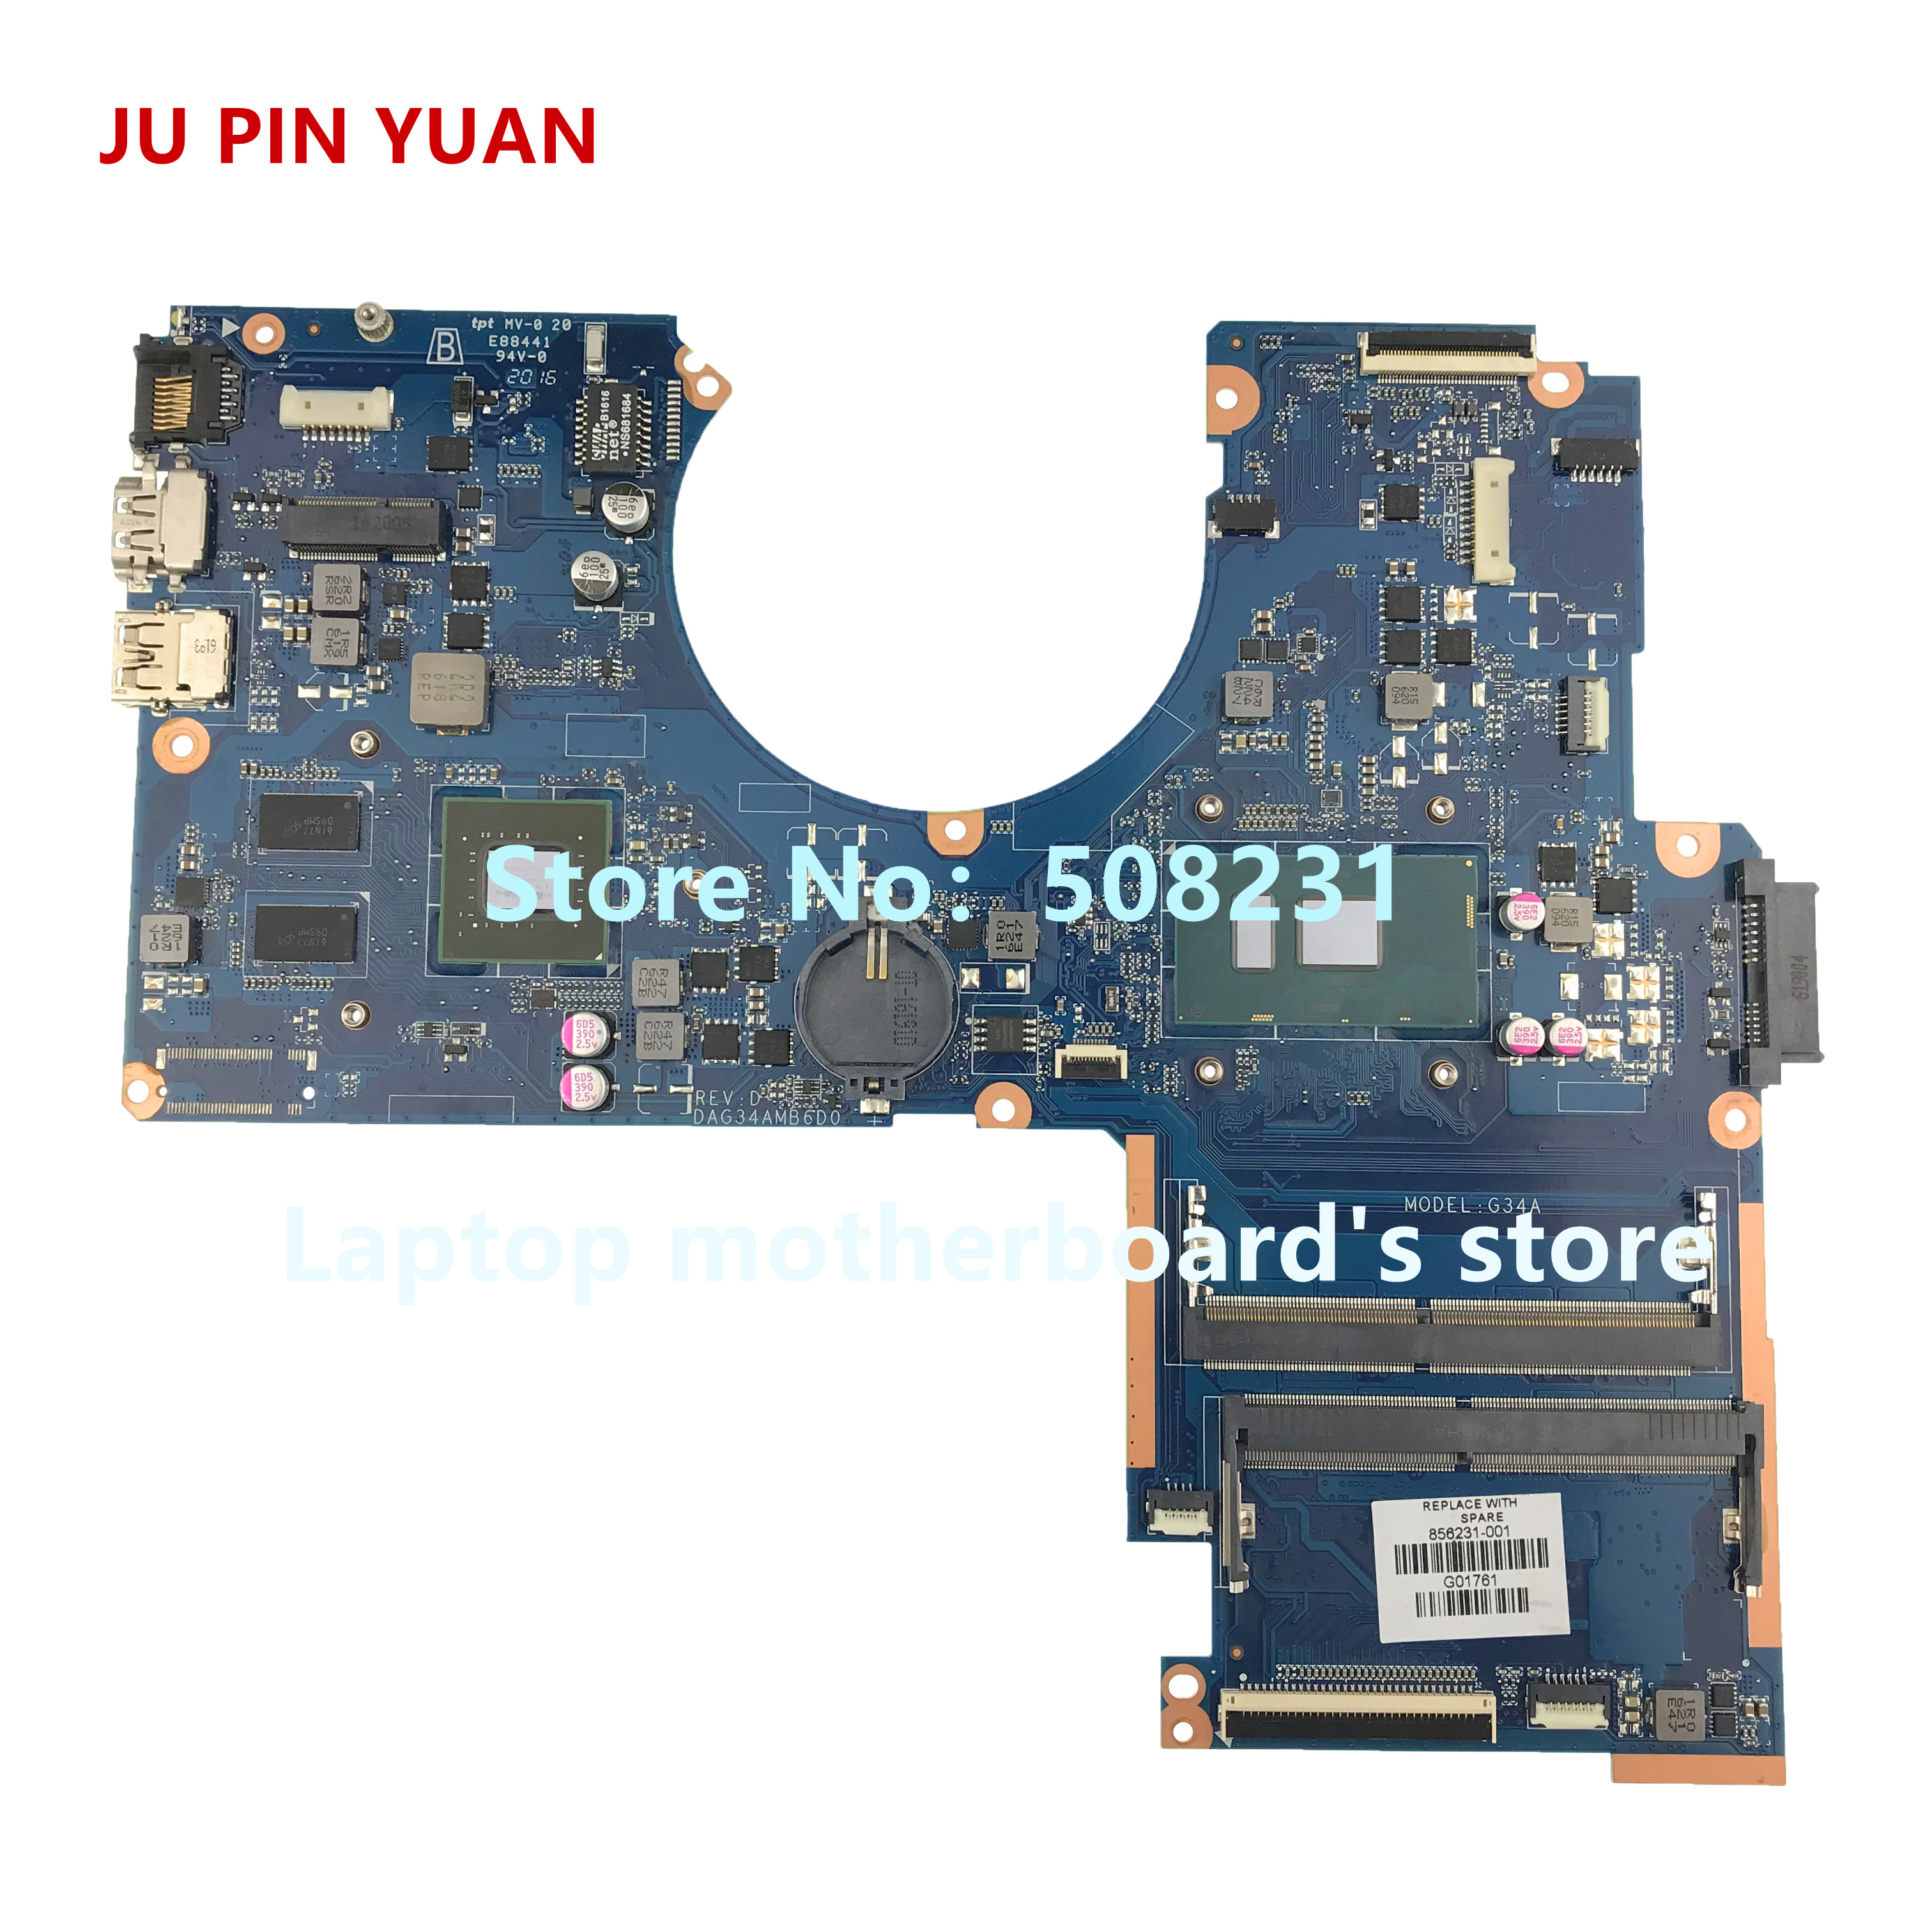 JU PIN YUAN 856231 601 for HP Pavilion 15 AU 15T AU Notebook Motherboard DAG34AMB6D0 Mainboard